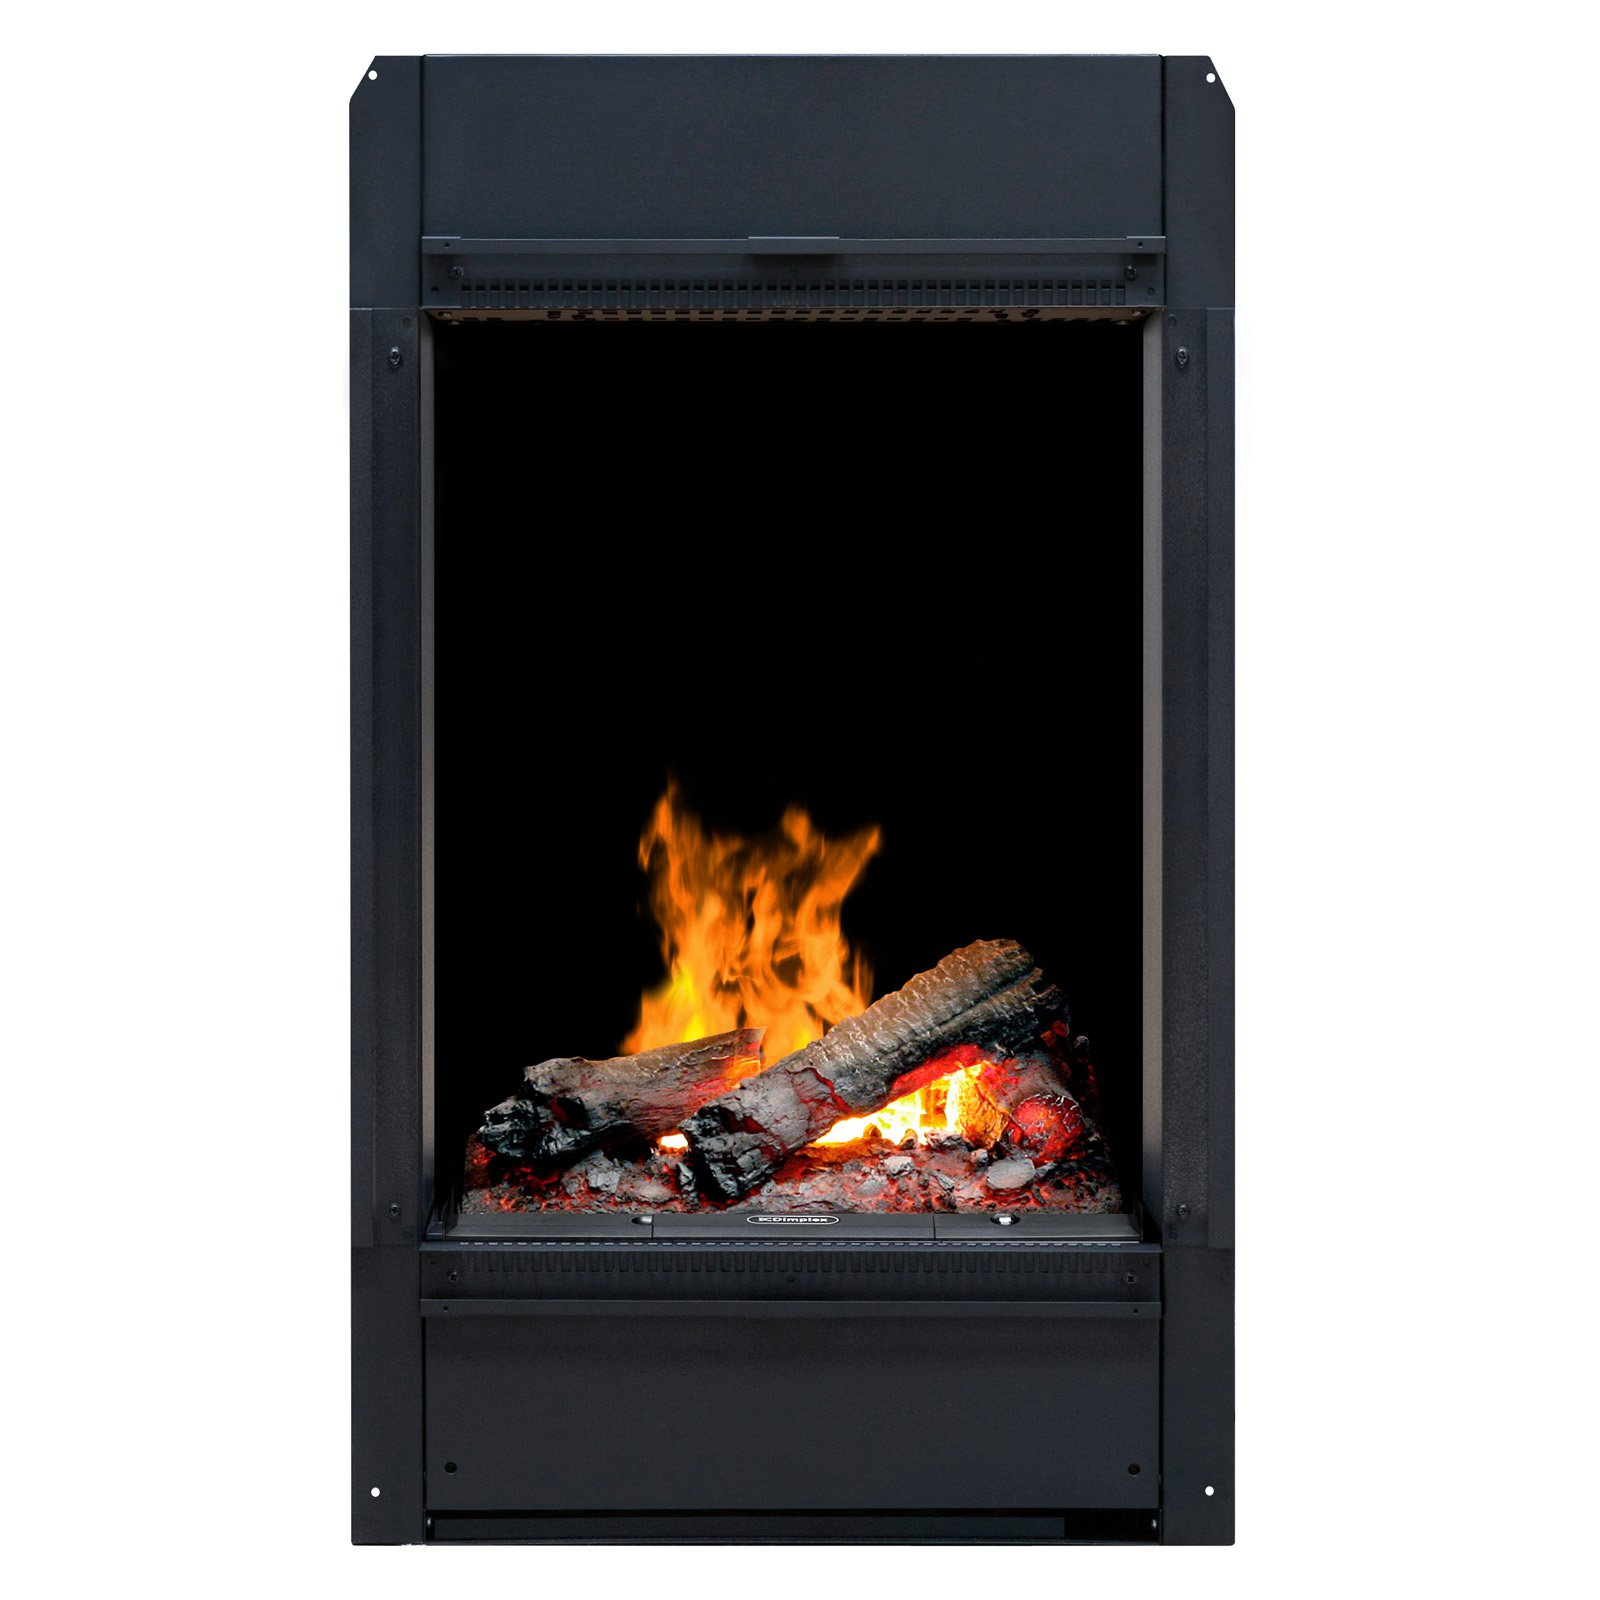 Dimplex Opti-Myst Pro Electric Fireplace